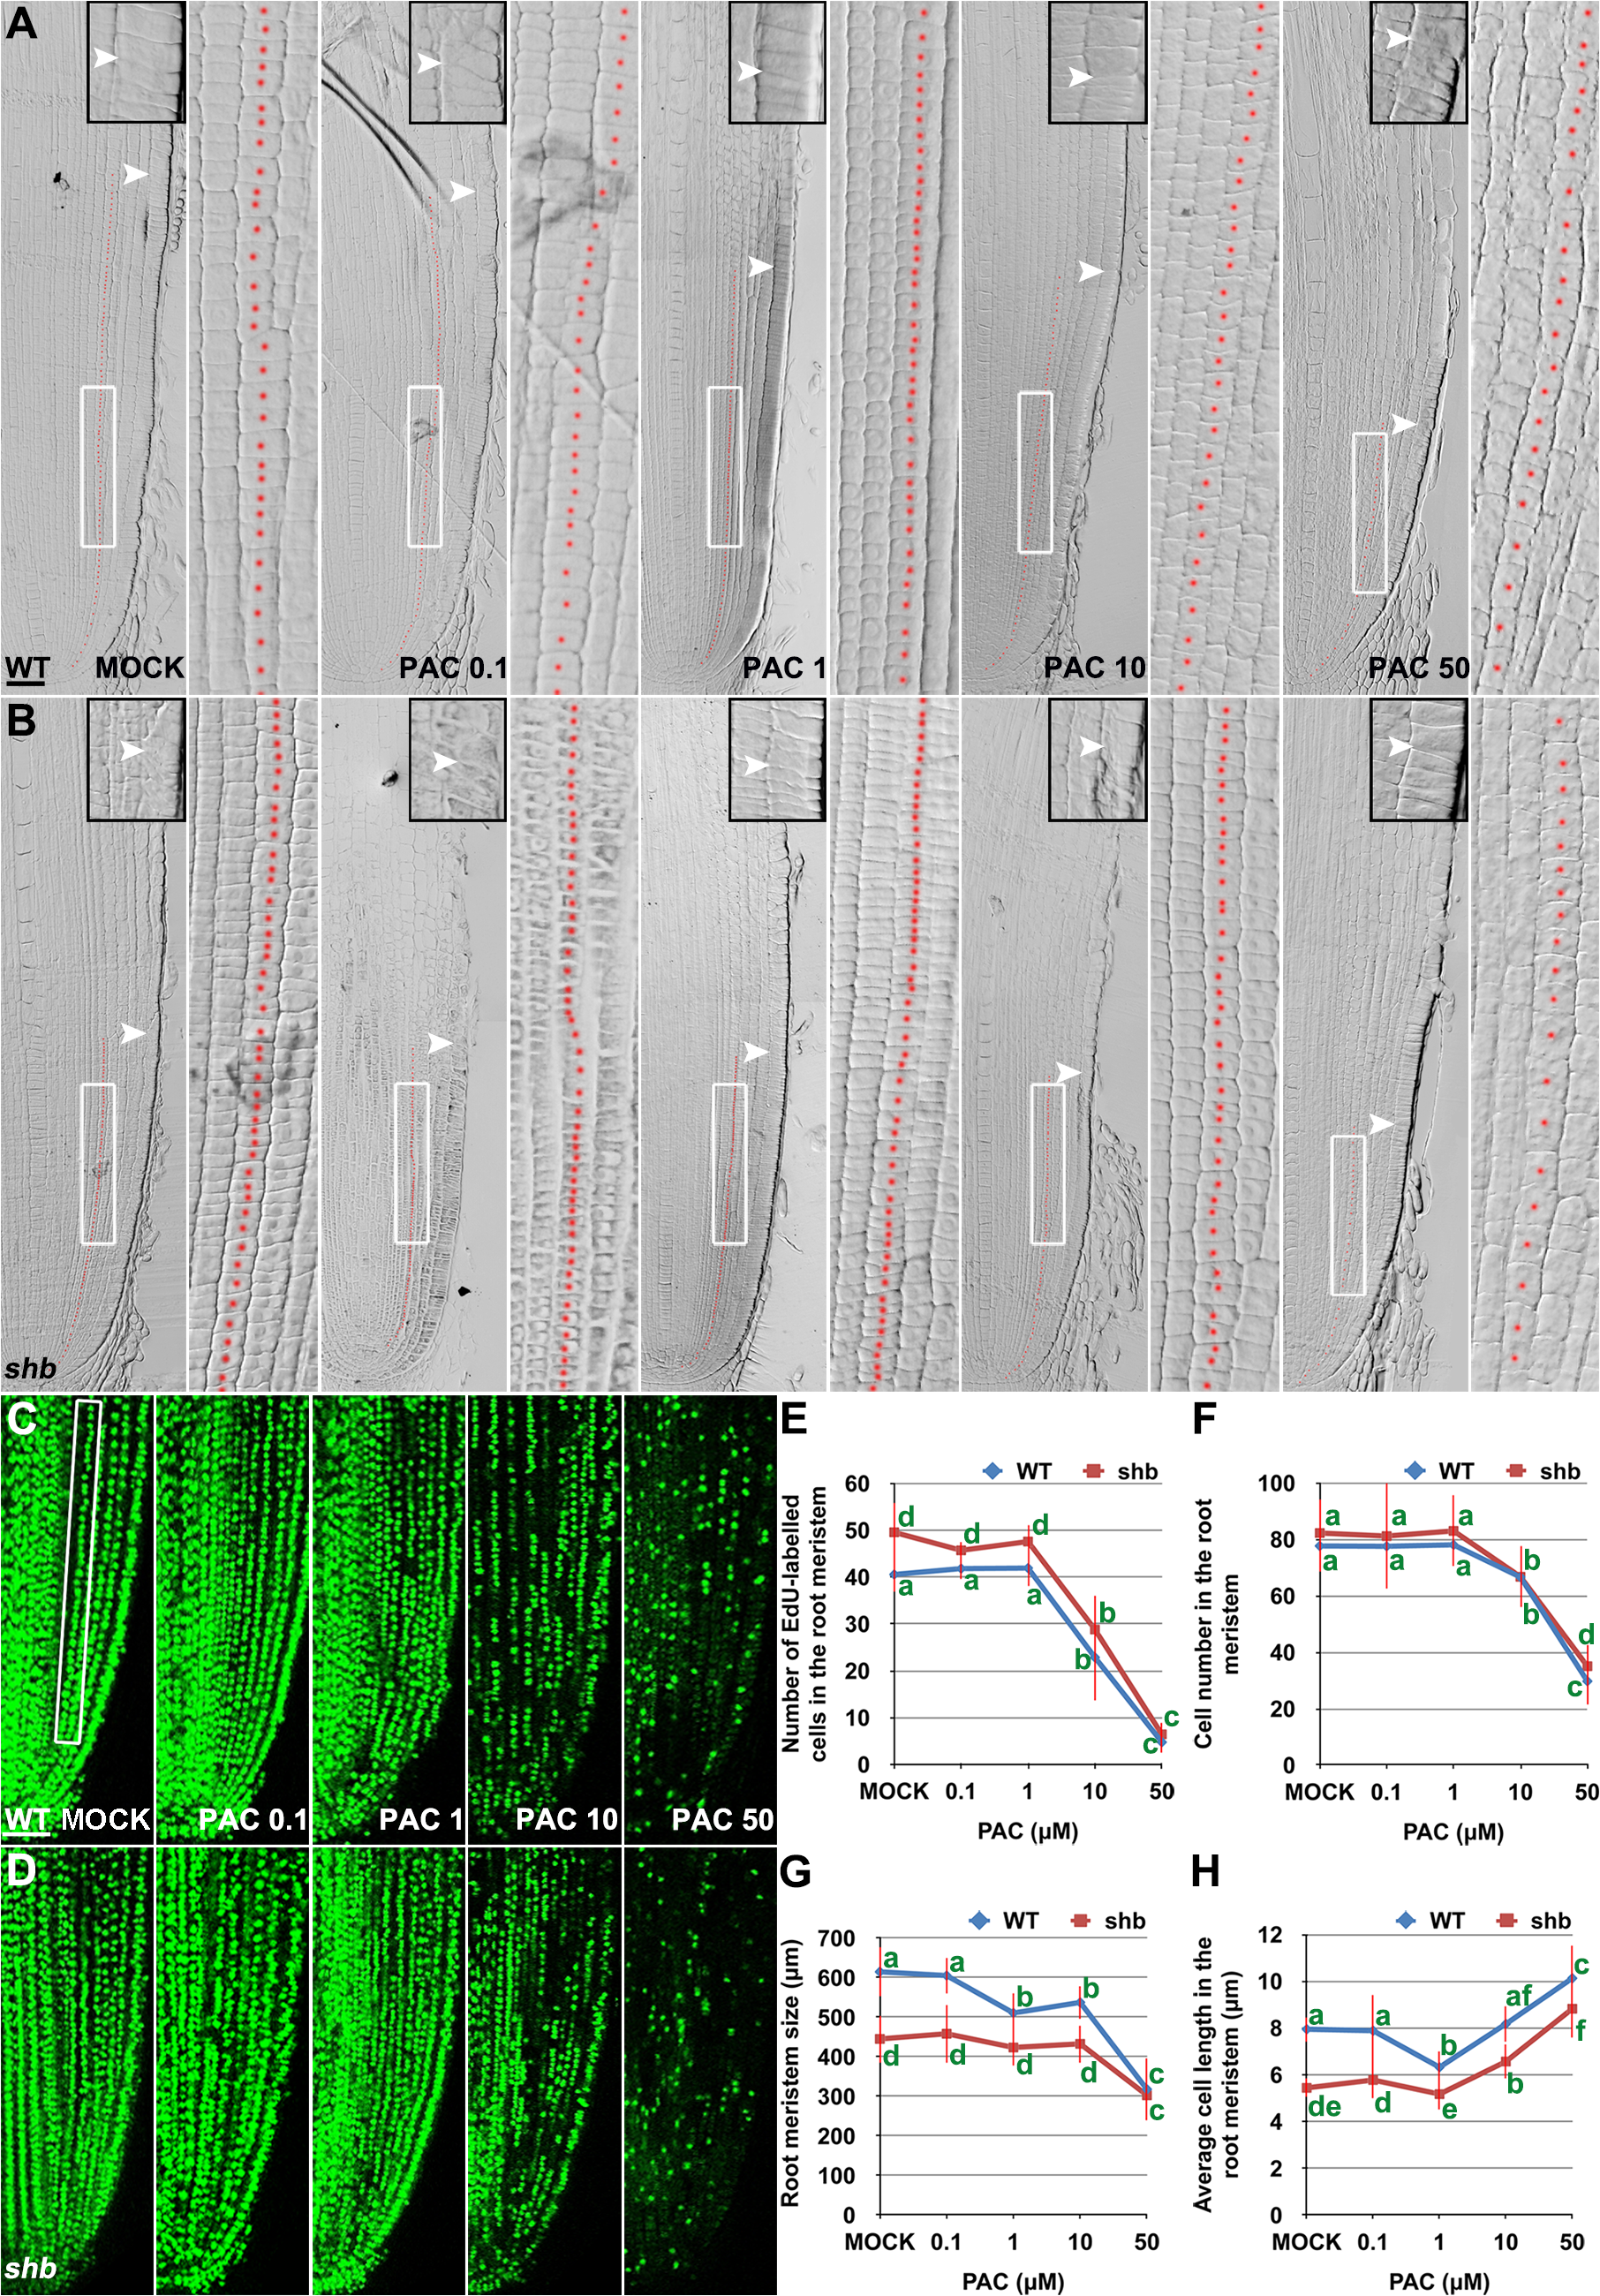 PAC has a dose-dependent effect on cell elongation and proliferation in the root meristem.